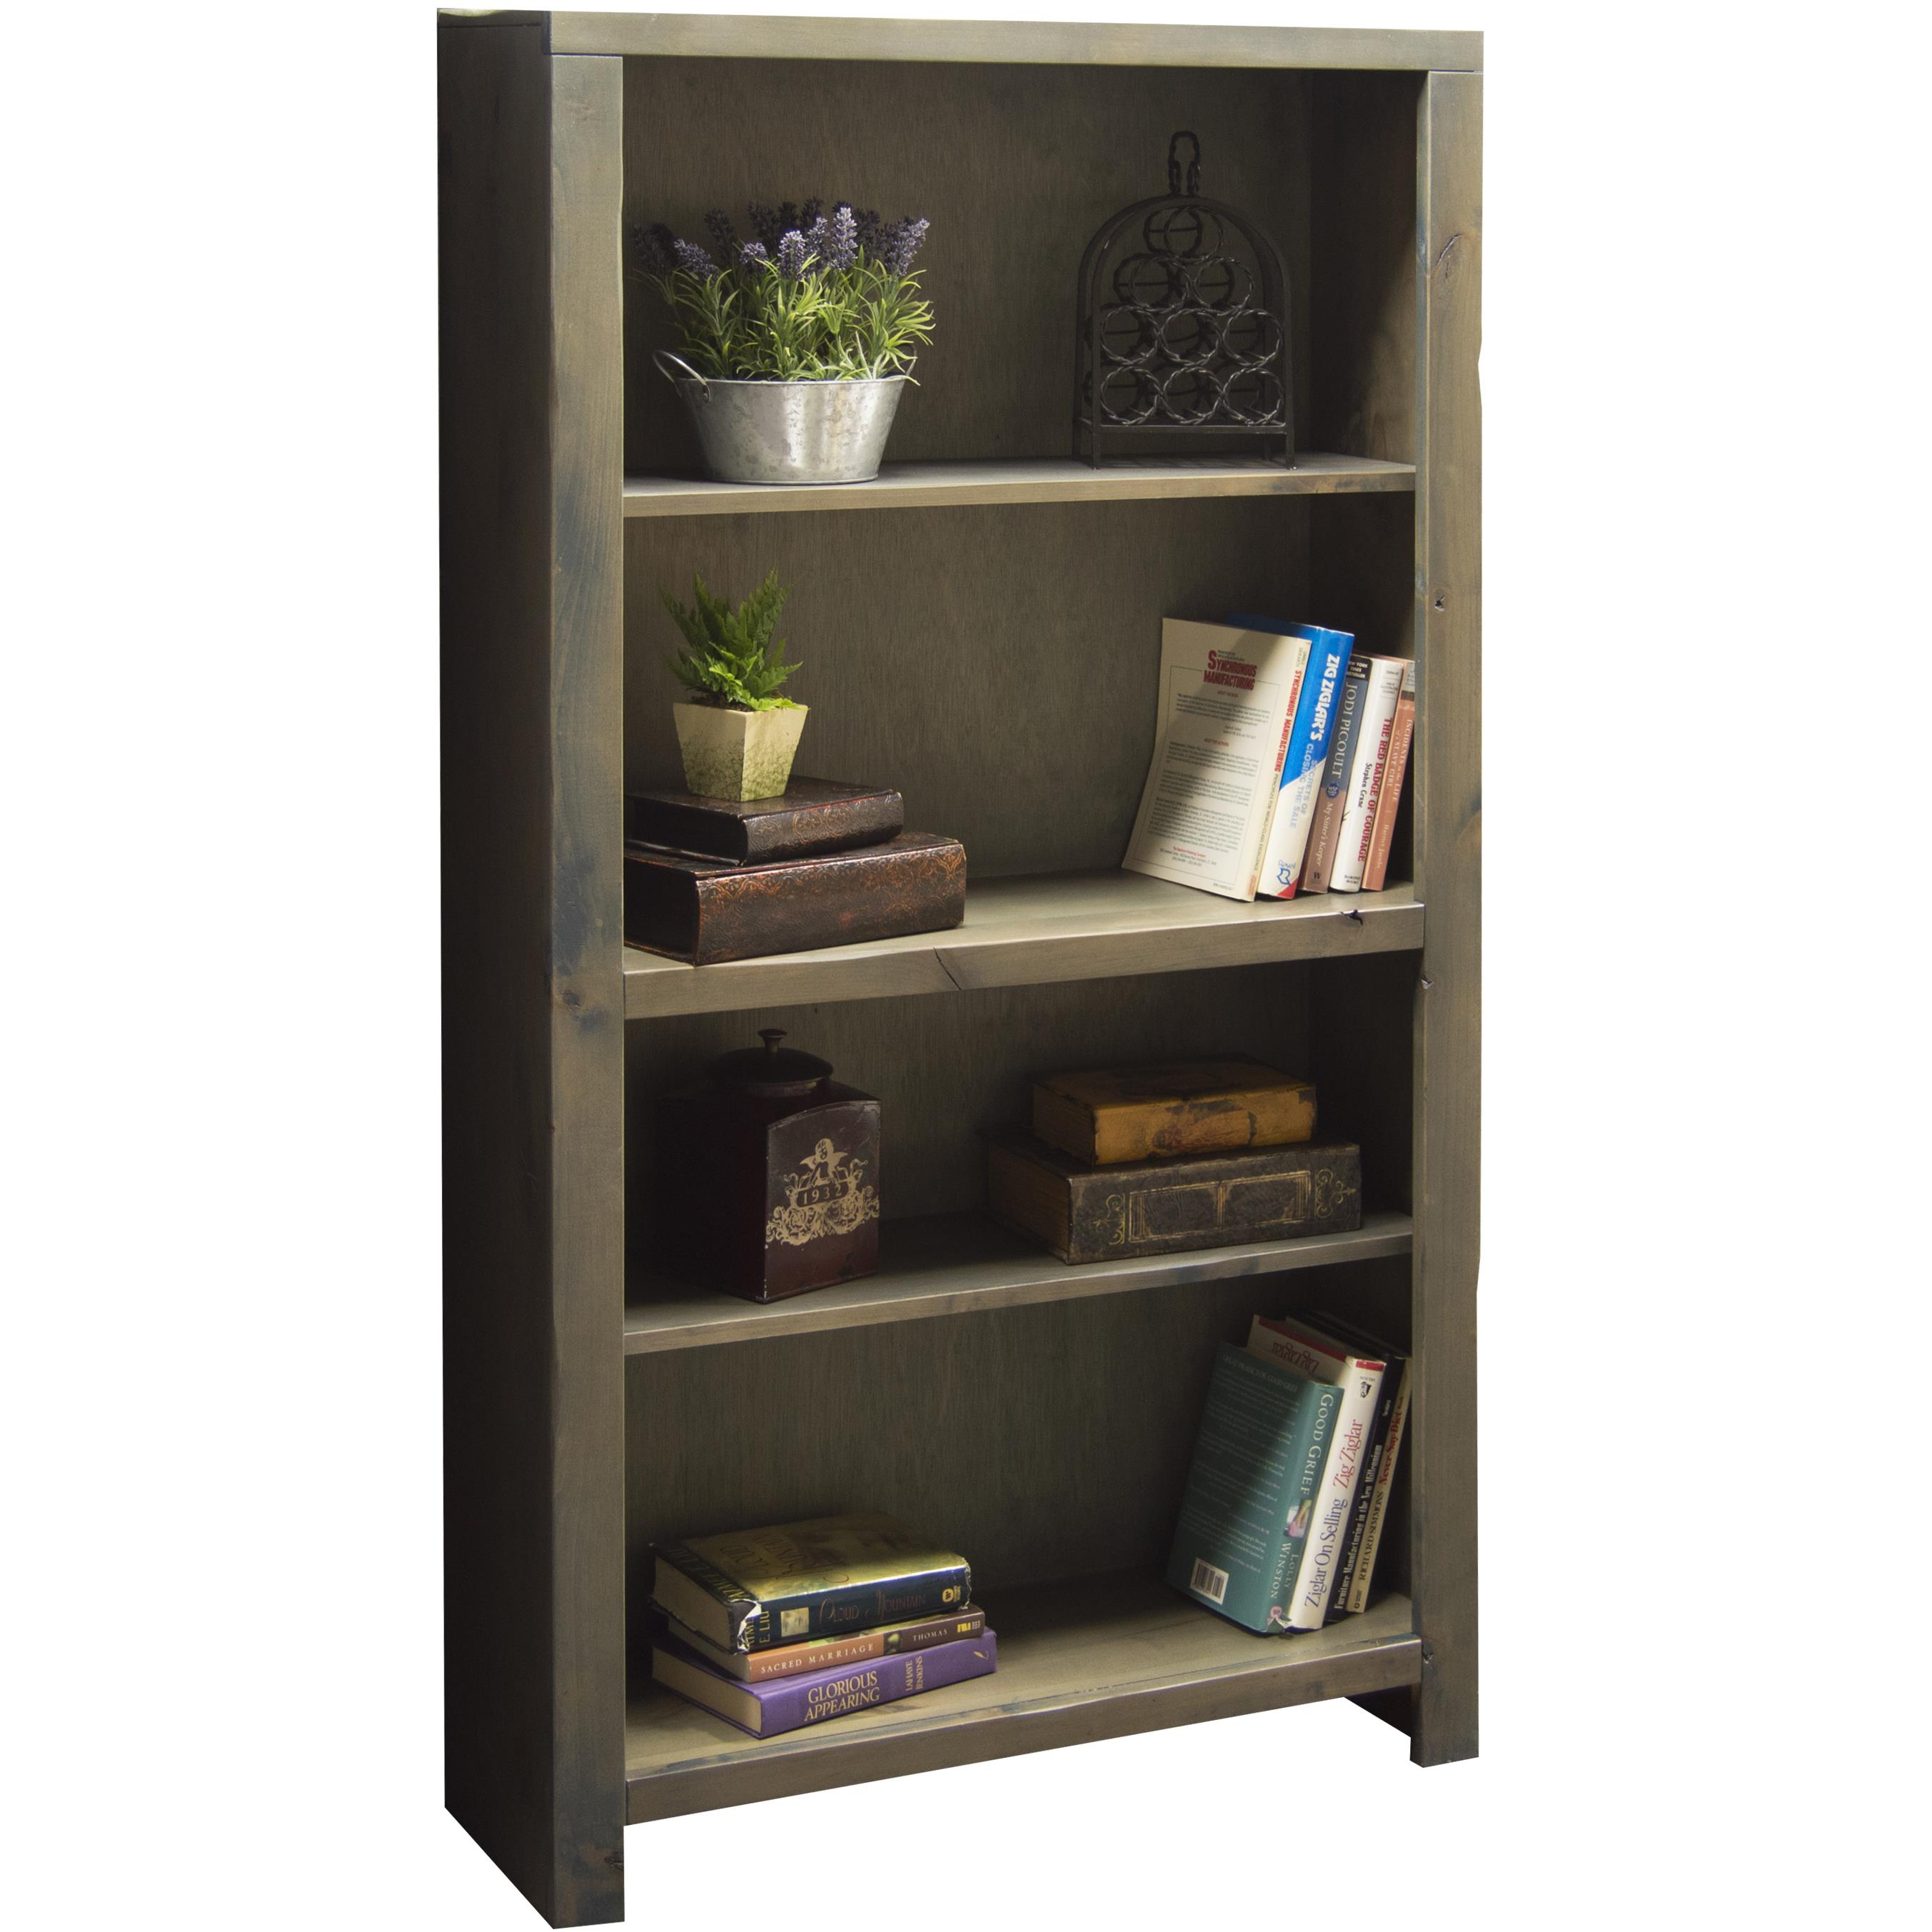 "Vendor 1356 Joshua Creek 60"" Bookcase - Item Number: JC6660-BNW"